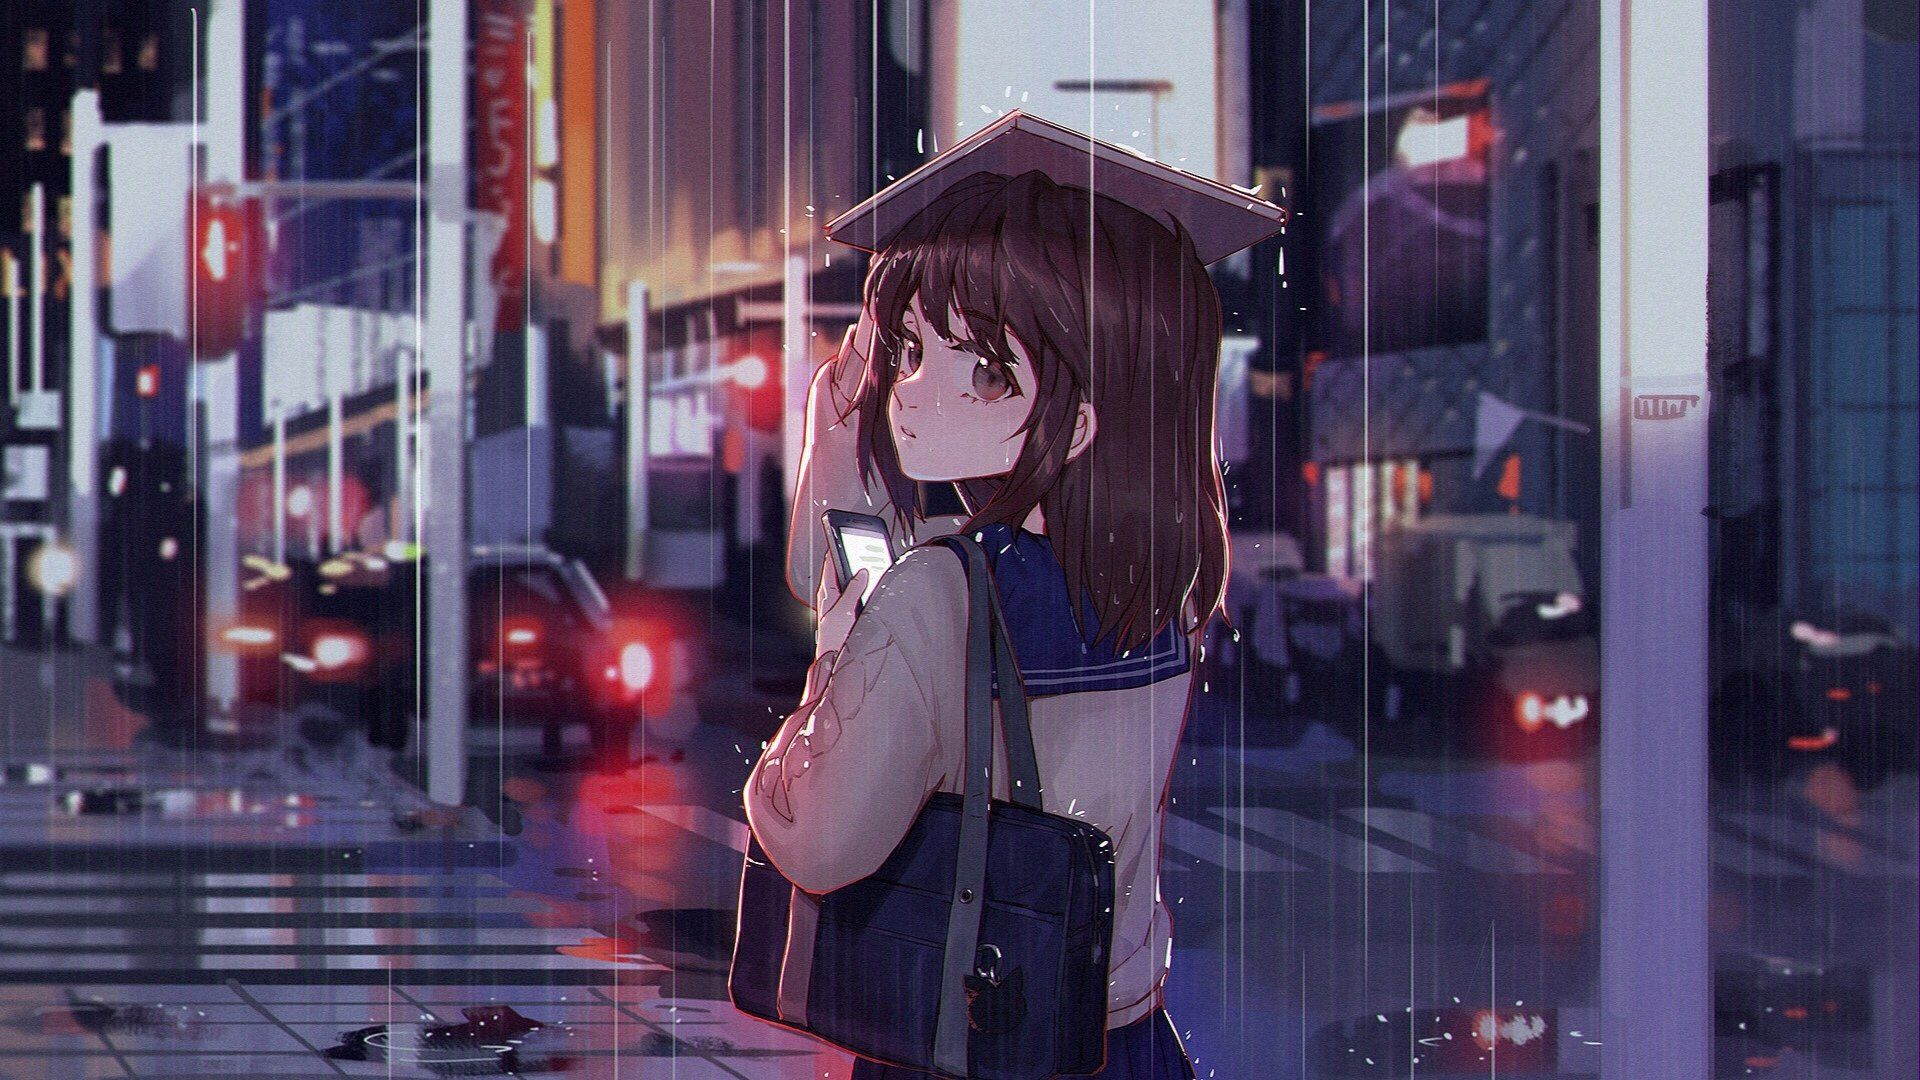 Anime Original Short Hair Brown Hair Brown Eyes Bag Rain Book